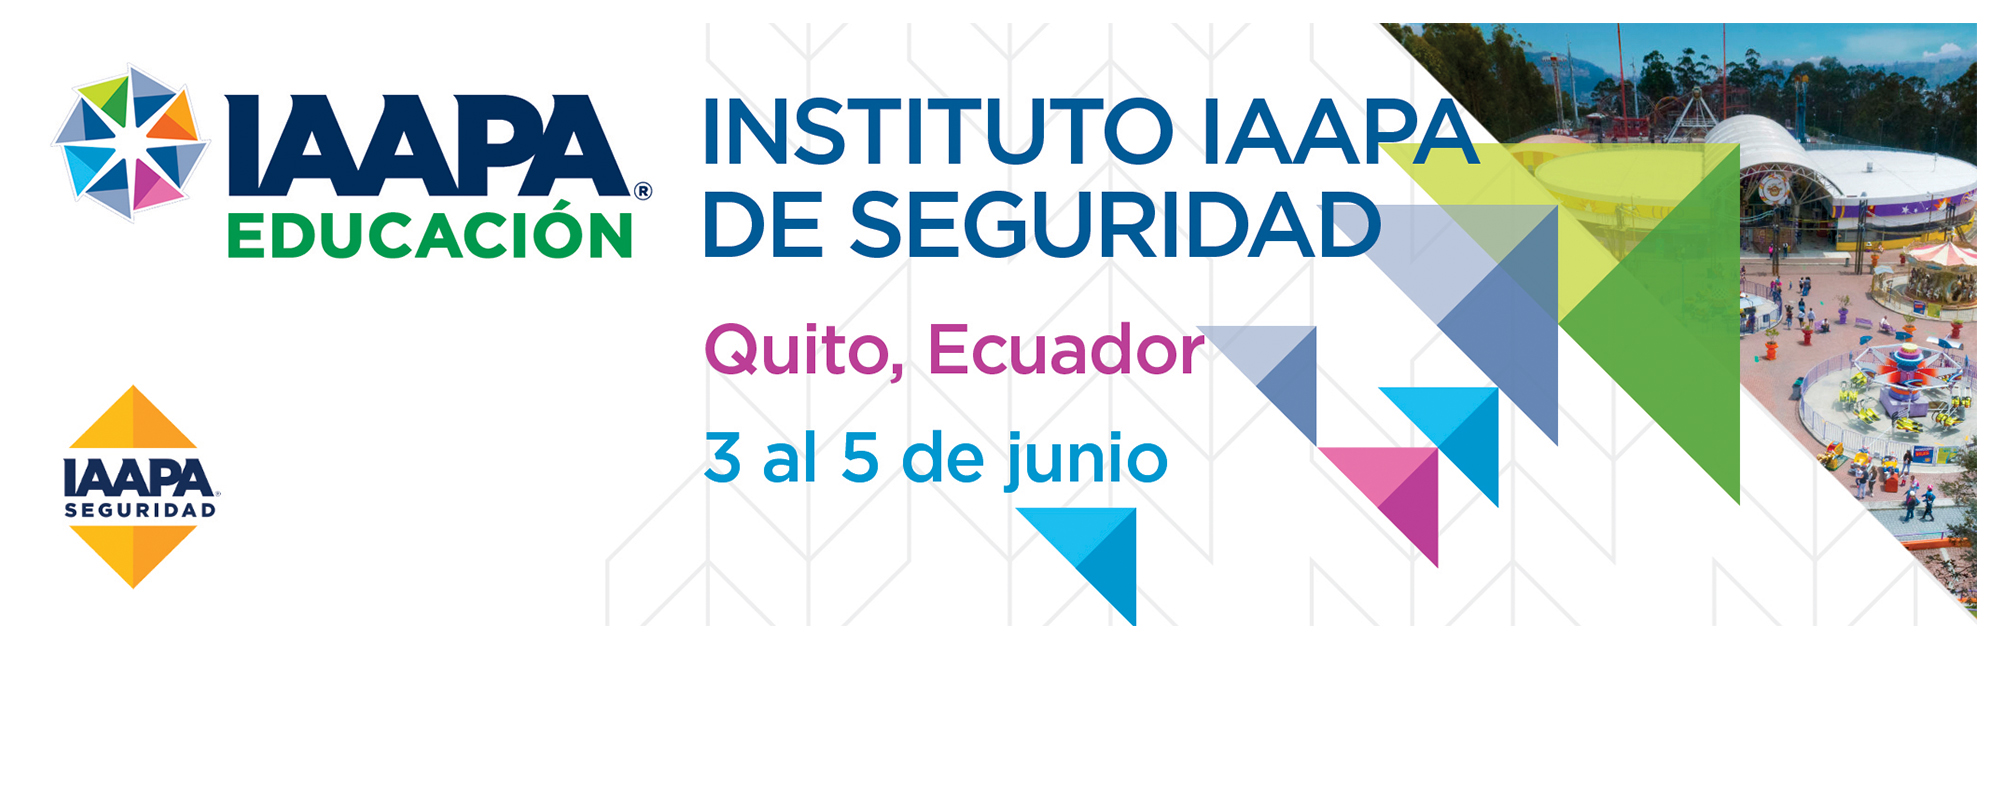 Instituto IAAPA de Seguridad, Quito 2019